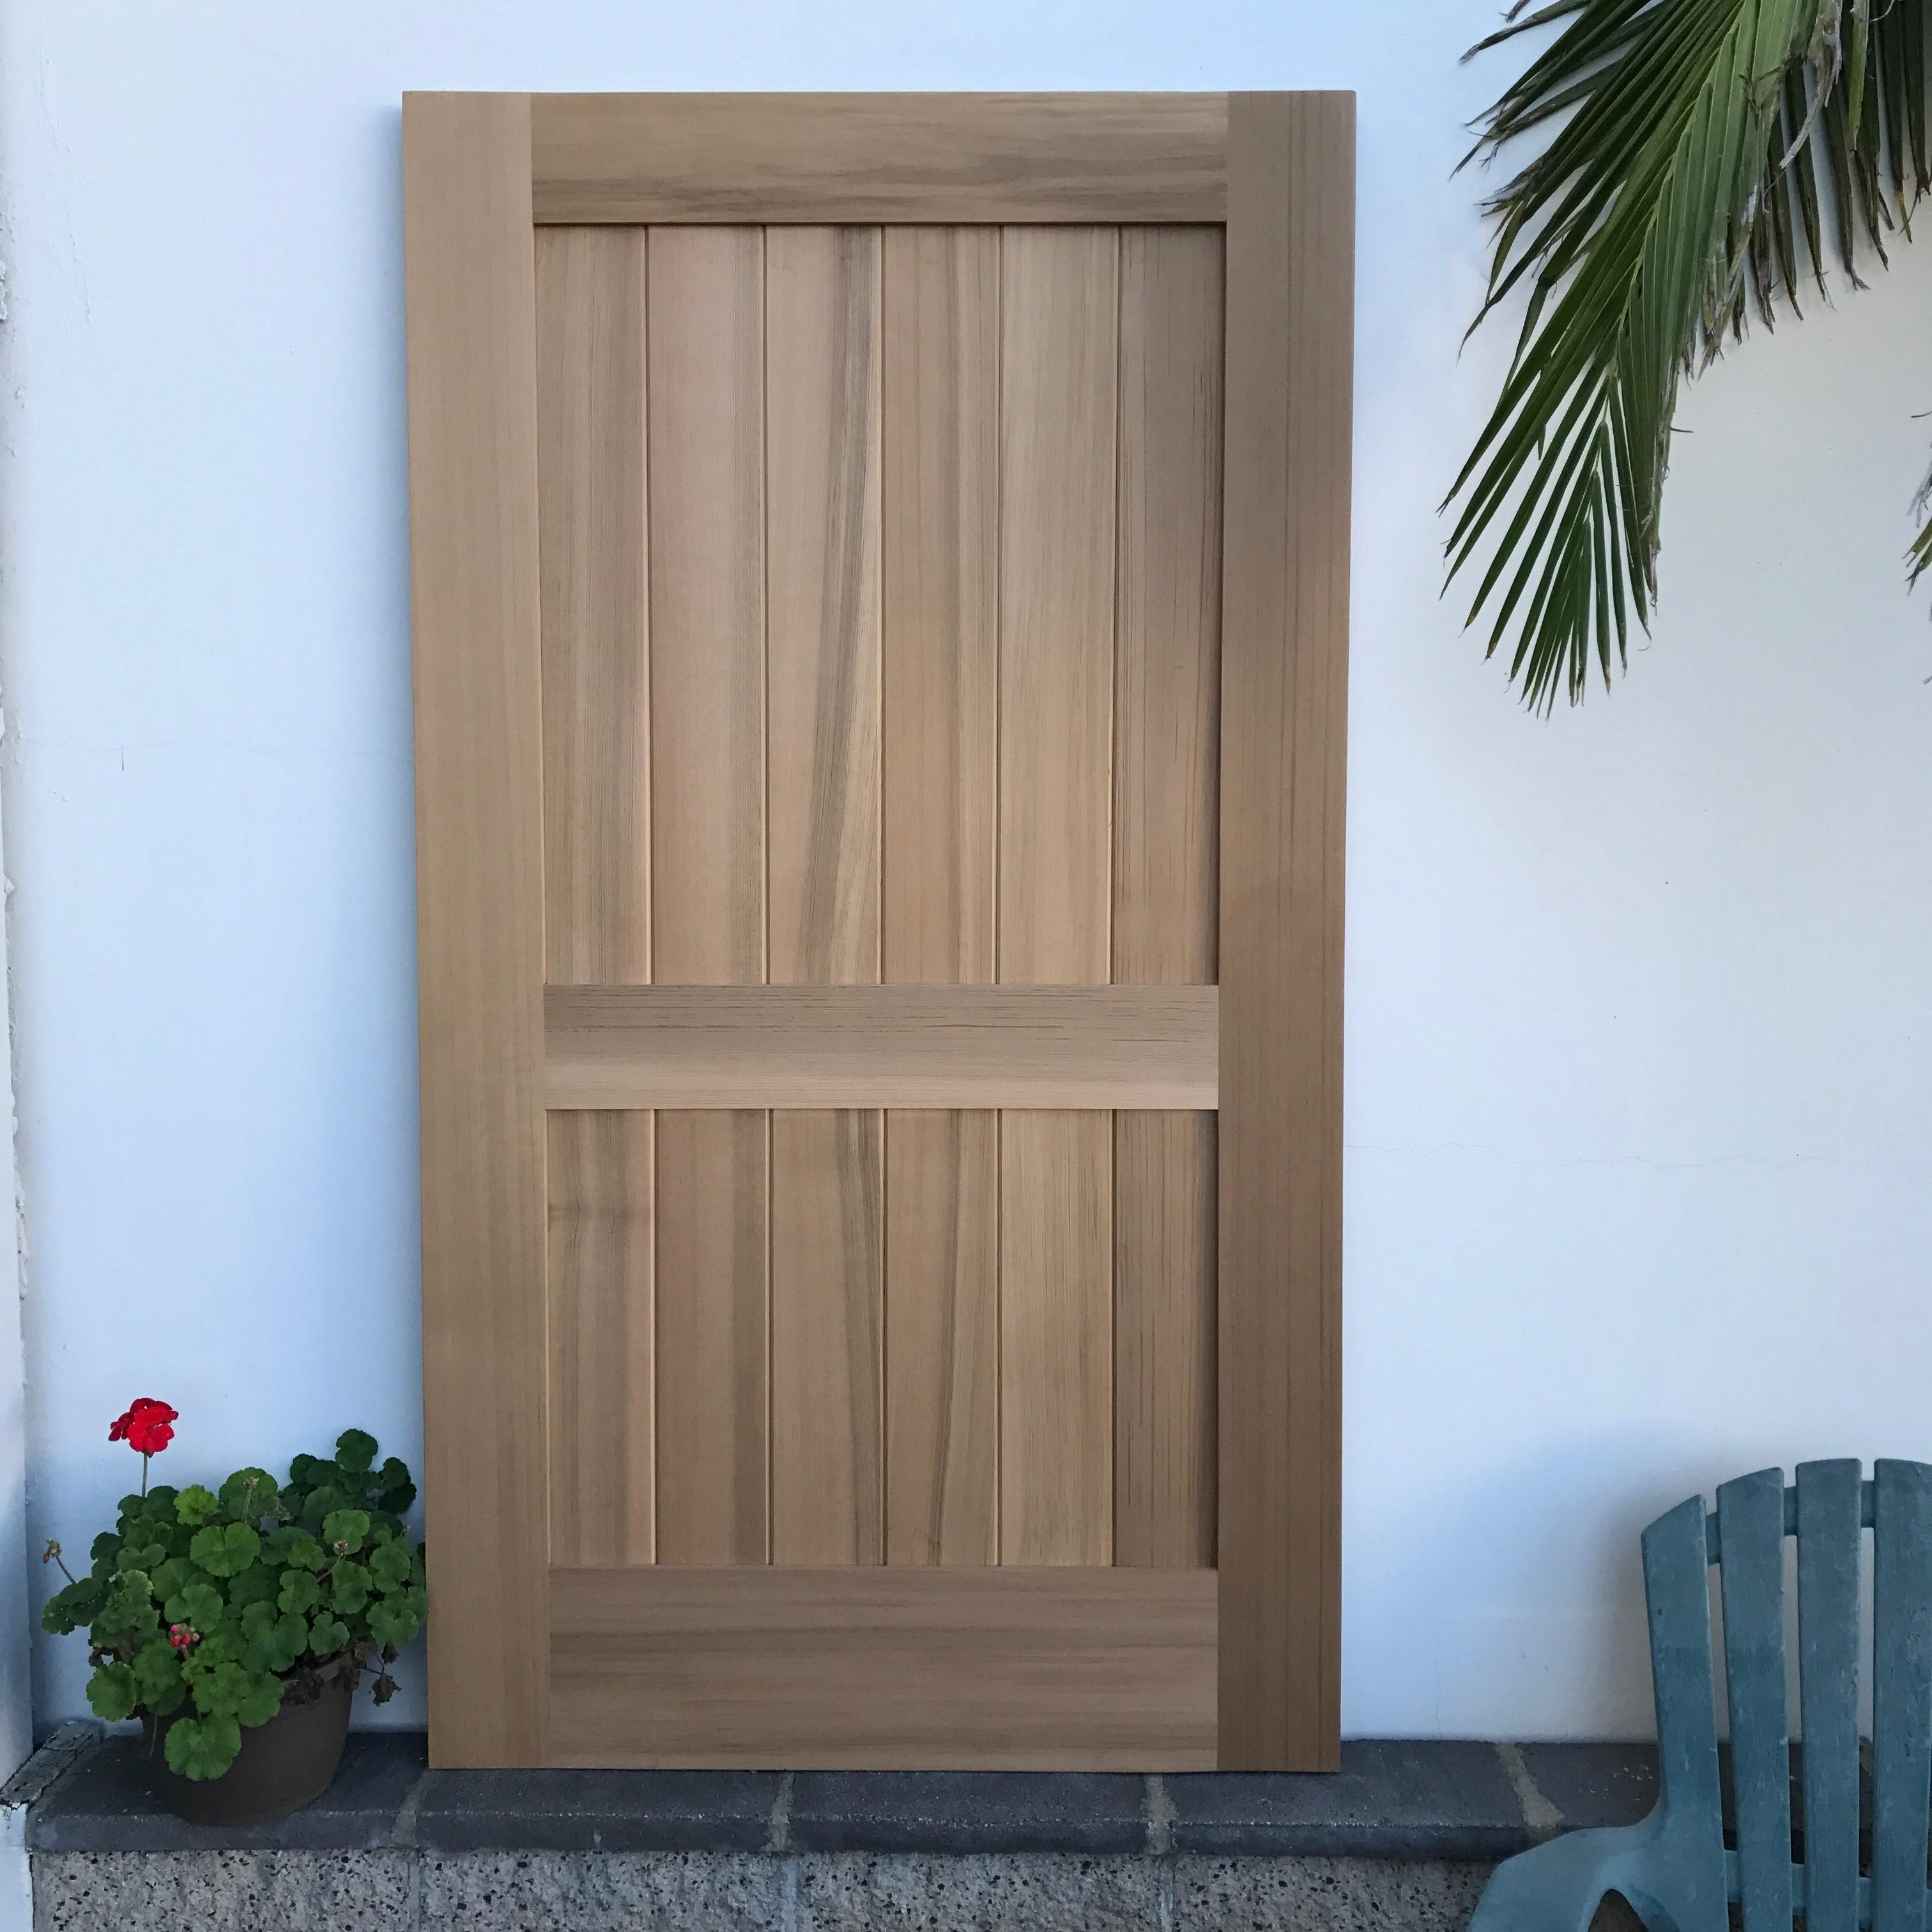 Diy wood gates custom wood gates by garden passages diy wood gate square top 1 crossbar solutioingenieria Image collections